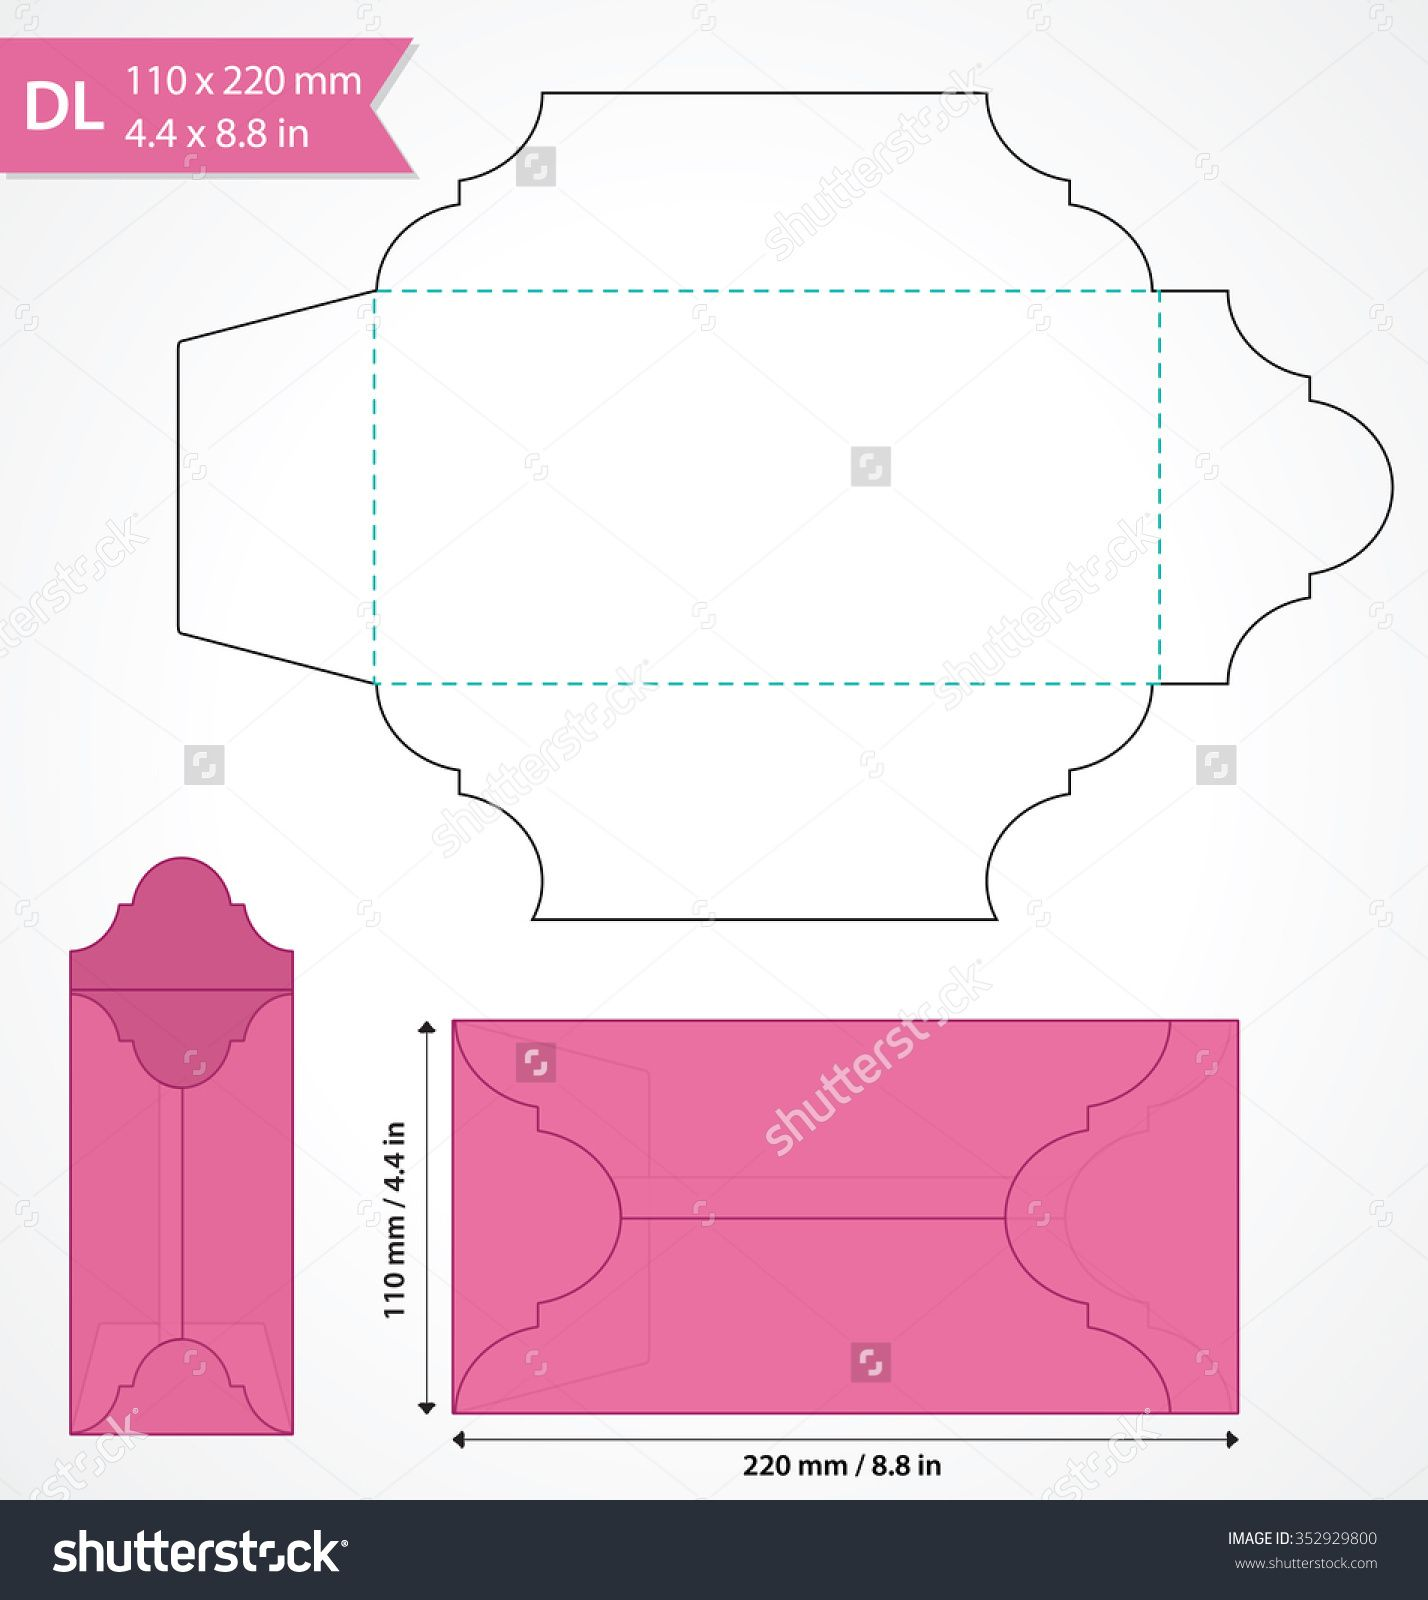 Die cut vector envelope template. Standard DL size envelope to hold ...